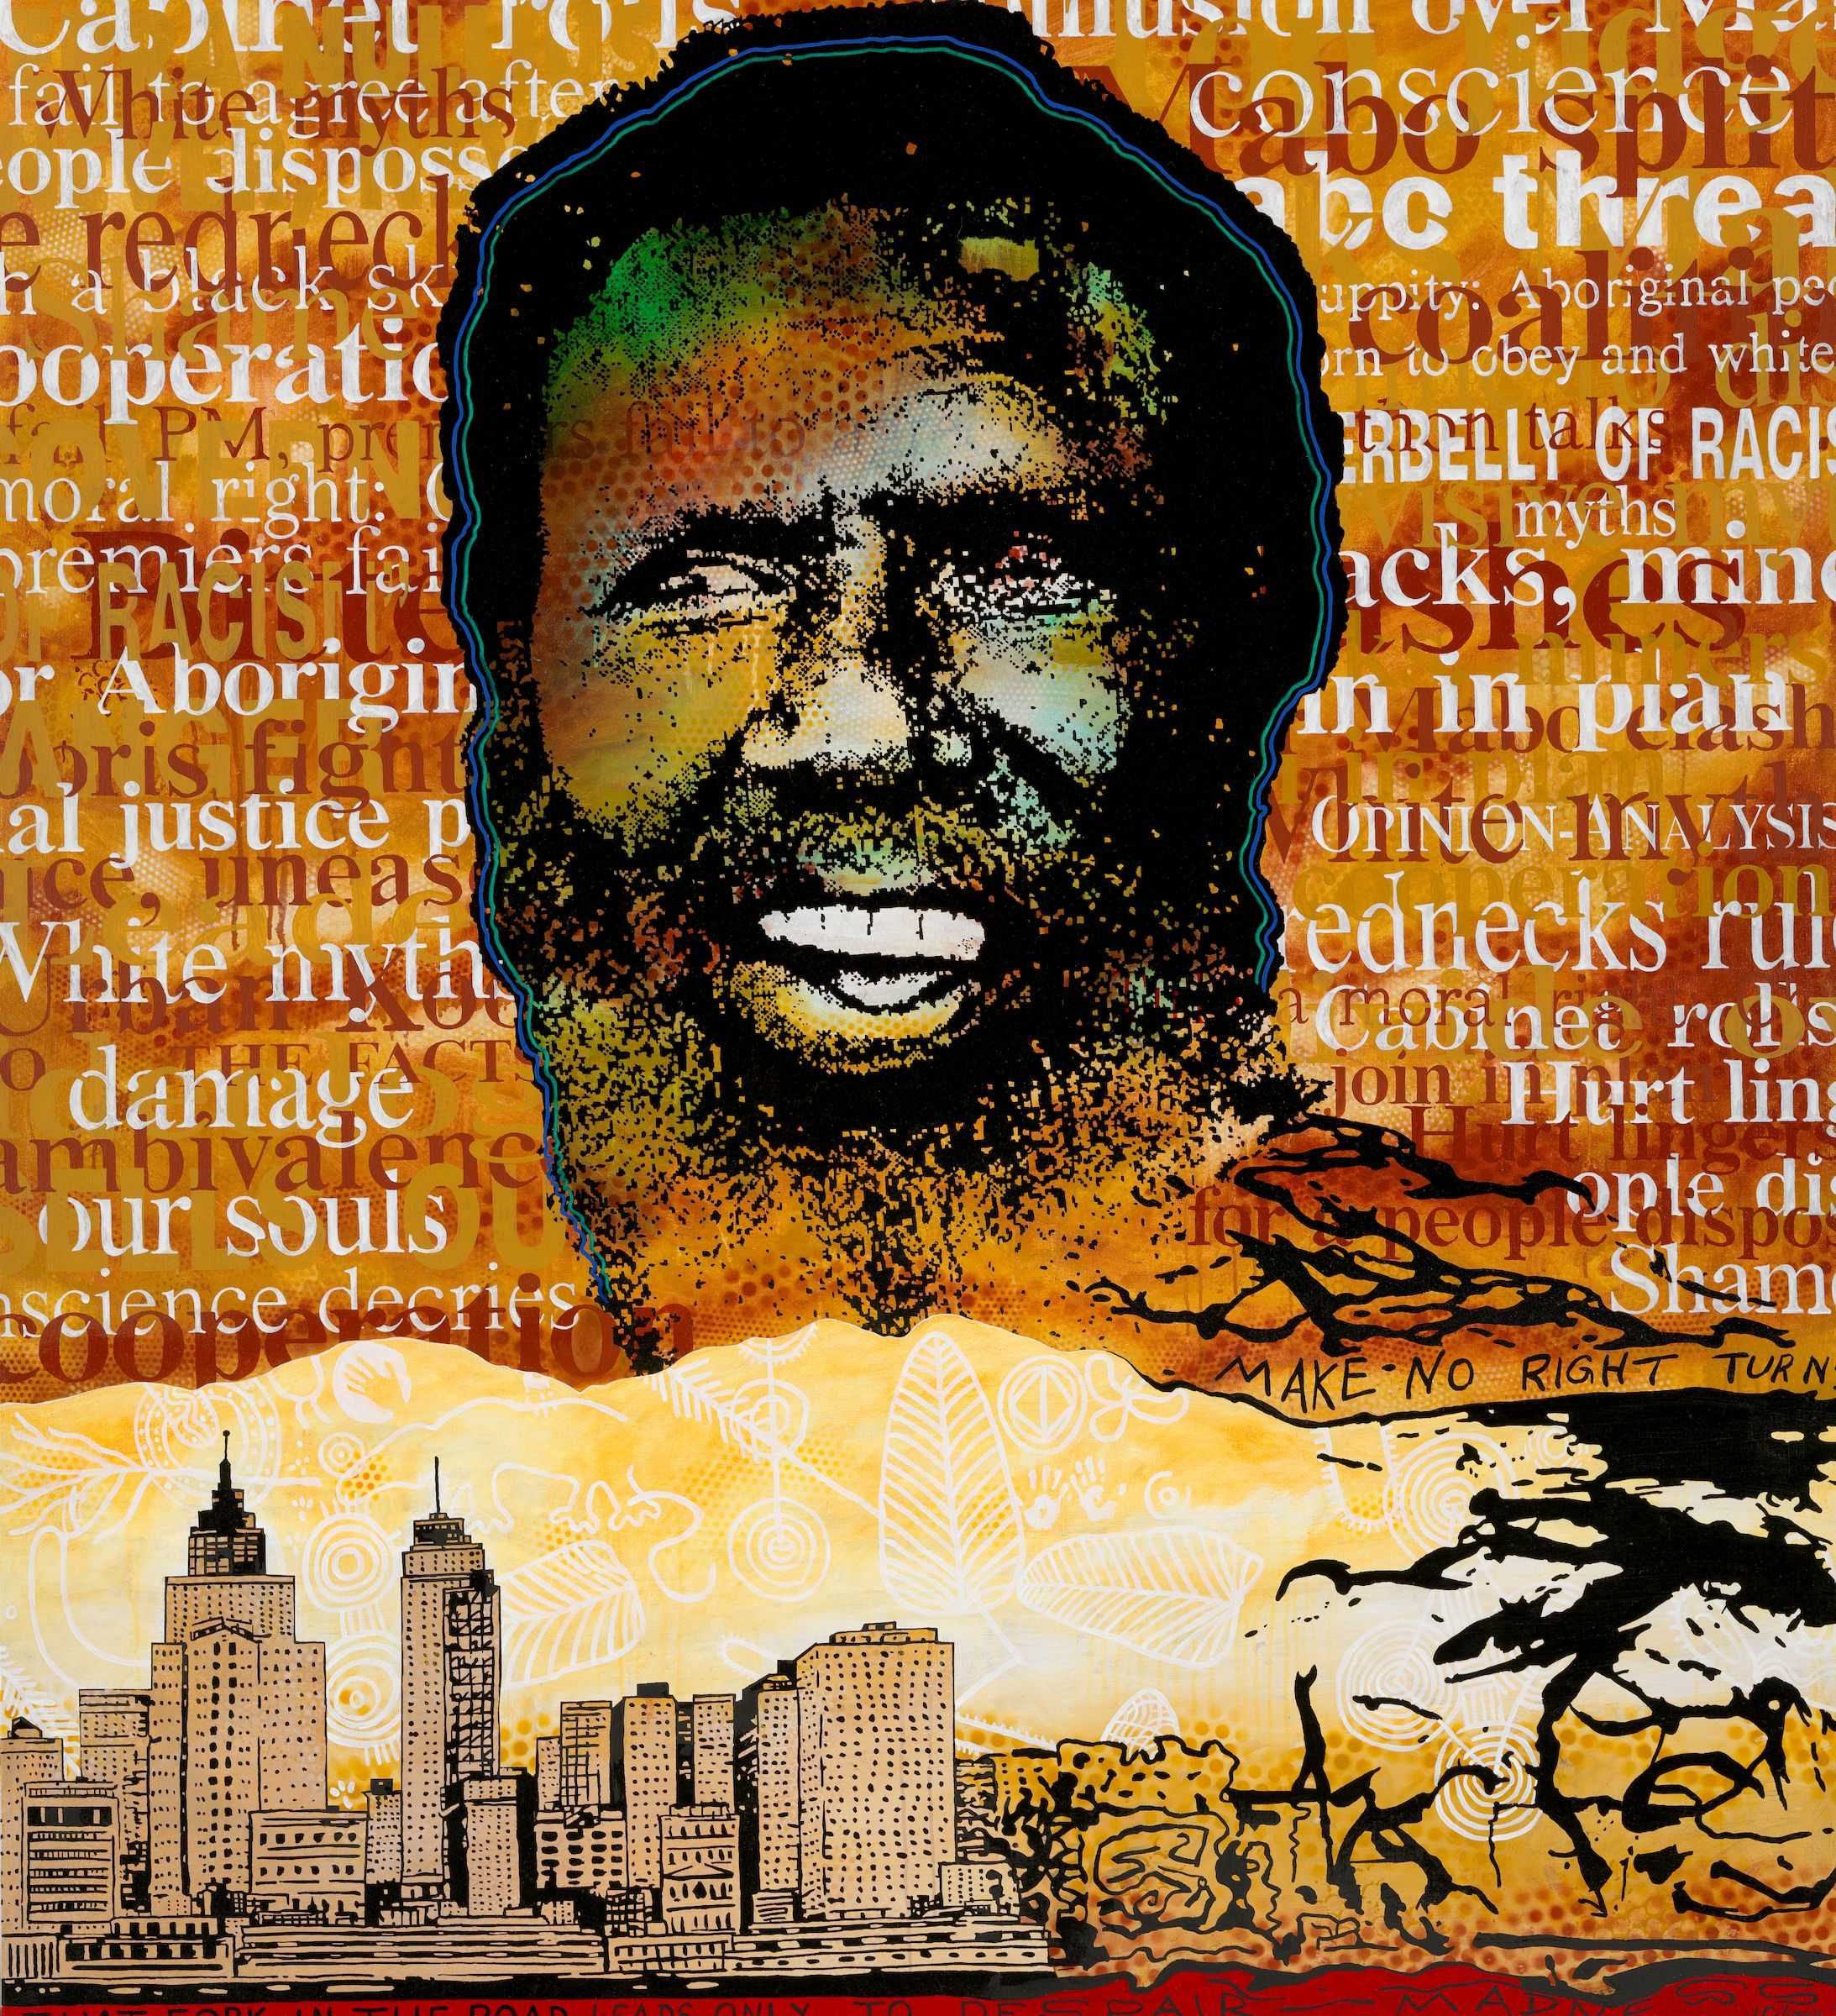 eddie mabo is not only a hero of the film mabo essay Mabo by rachael perkins  helps students in years 11/12 unlock the key to an a+ essay eddie mabo's landmark struggle for justice  she has to do several jobs and eddie, unbeknown to.